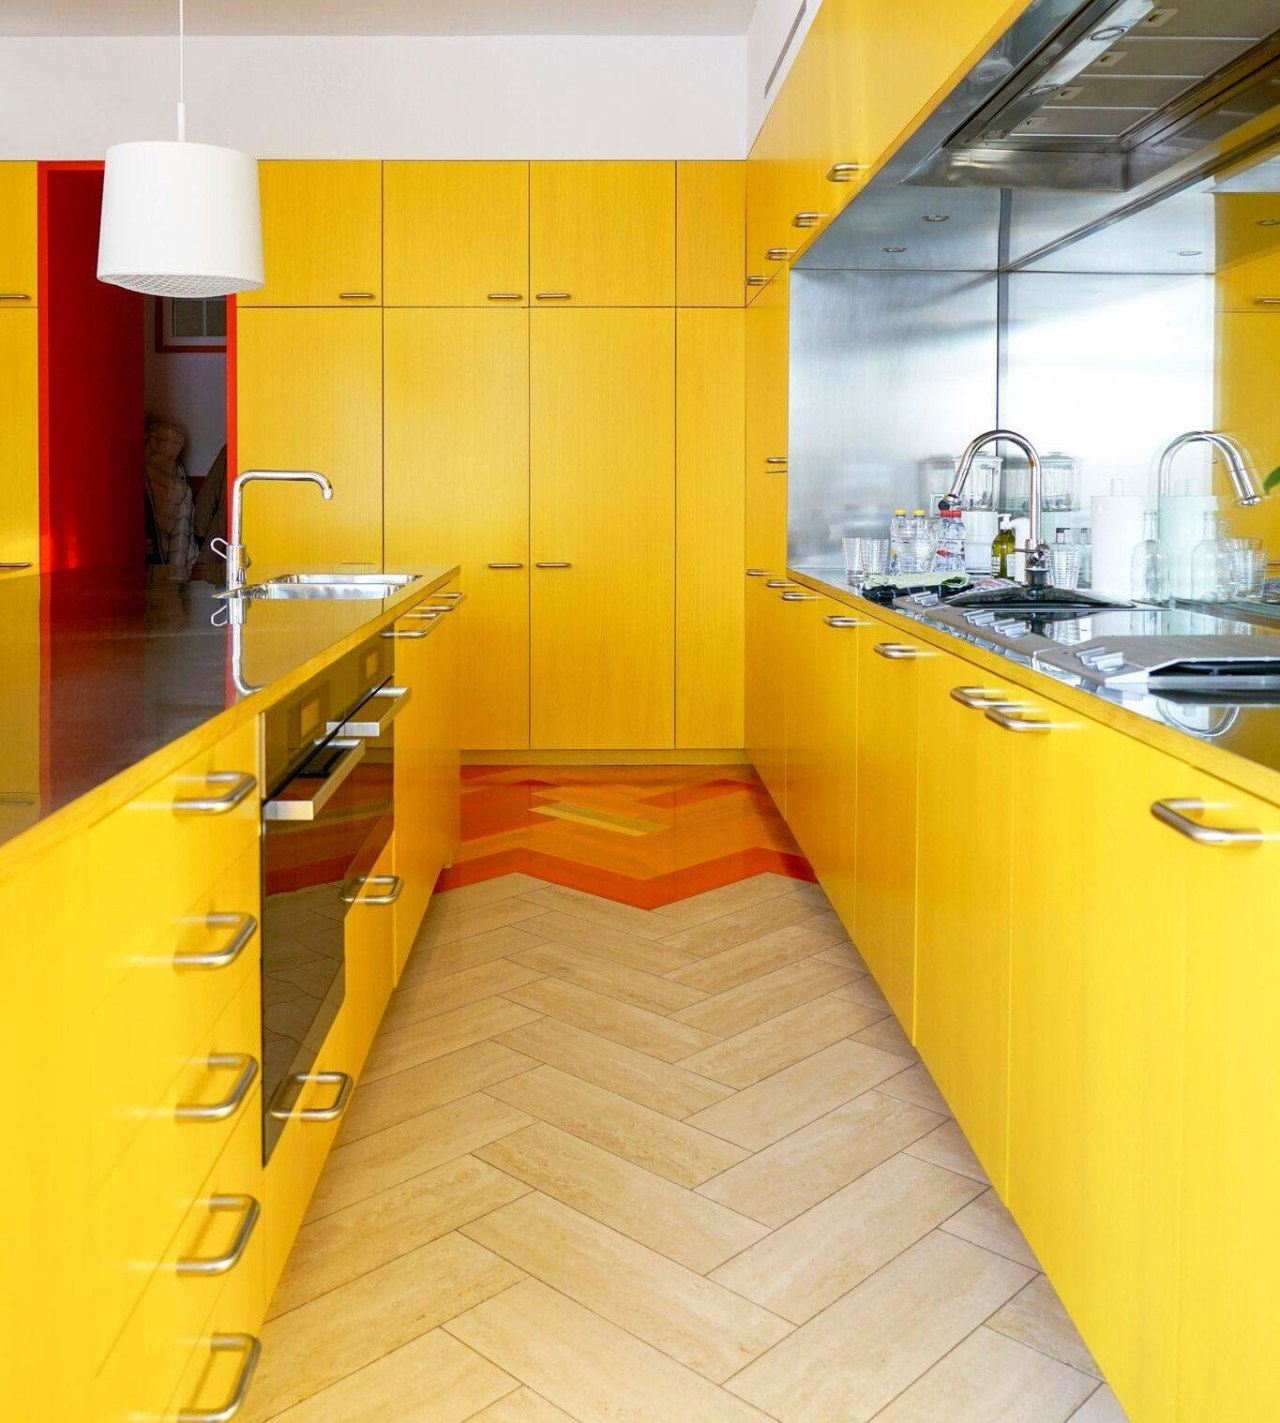 All the colours in the flat come from architecture, building, cabinetry, ceiling, countertop, floor, flooring, furniture, house, interior design, kitchen, material property, orange, property, room, tile, yellow, orange